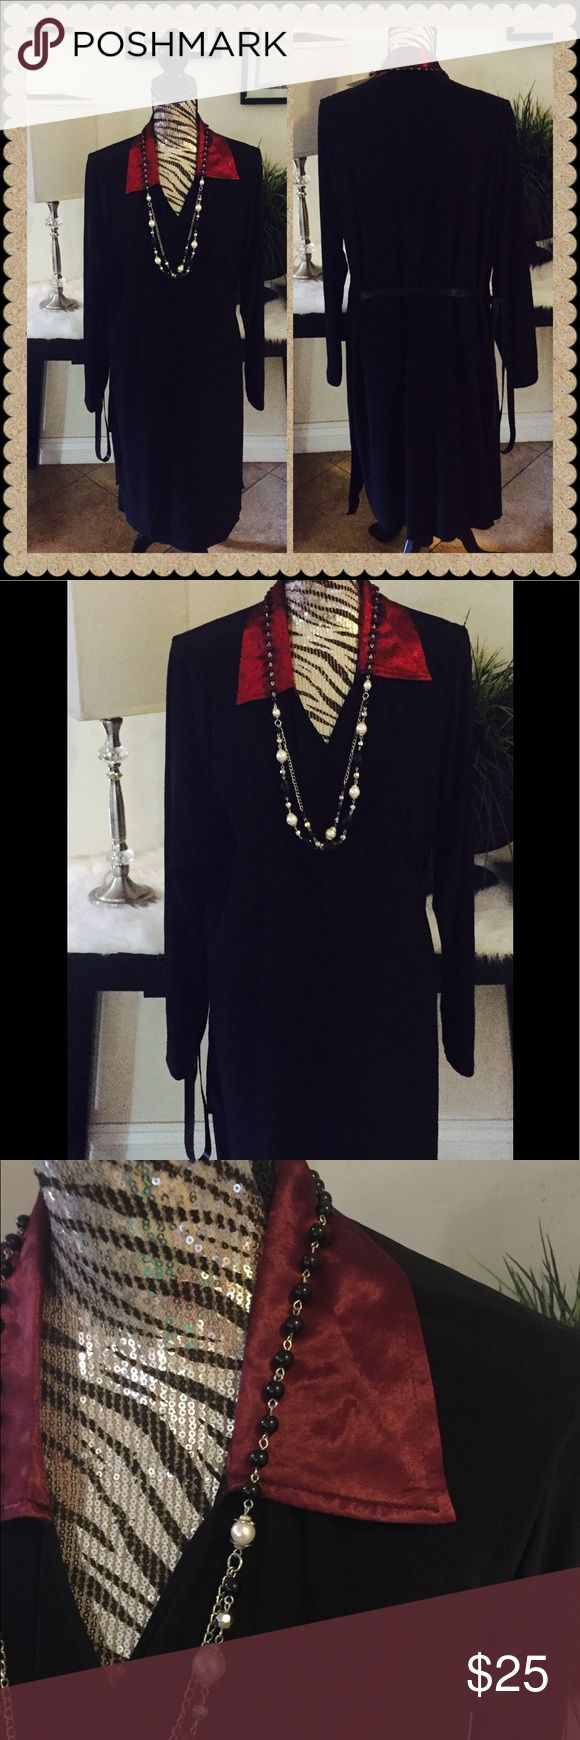 TORRID L/S wrap dress black 4X NWT Torrid L/S wrap dress black 4X. It is new with tag. It's very stretch material 92% polyester 8% spandex, gladly bundle but I don't trade ( necklace not included) torrid Dresses Long Sleeve